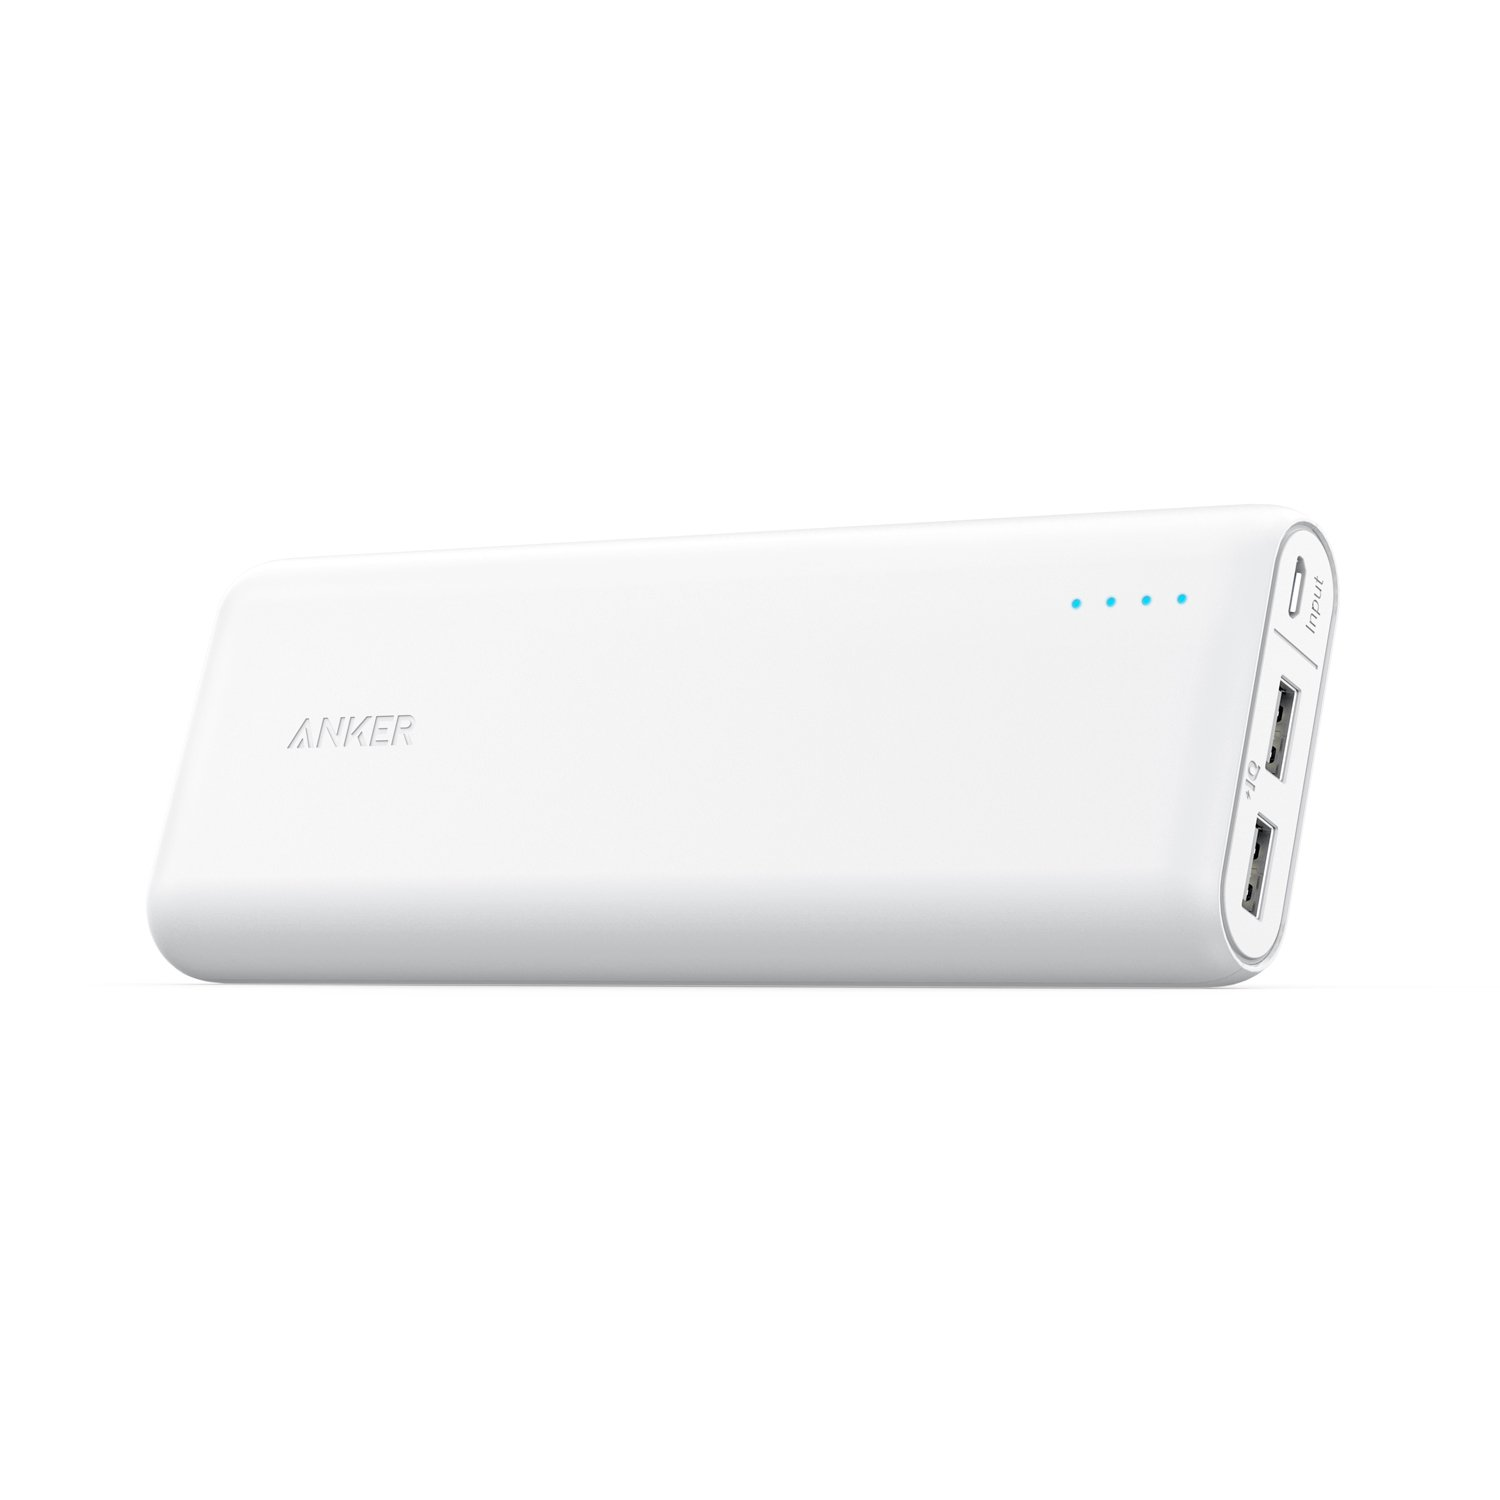 Portable Charger Anker PowerCore 20100mAh - Ultra High Capacity Power Bank with 4.8A Output, External Battery Pack for iPhone, iPad & Samsung Galaxy & More (Black) AK-A1271011